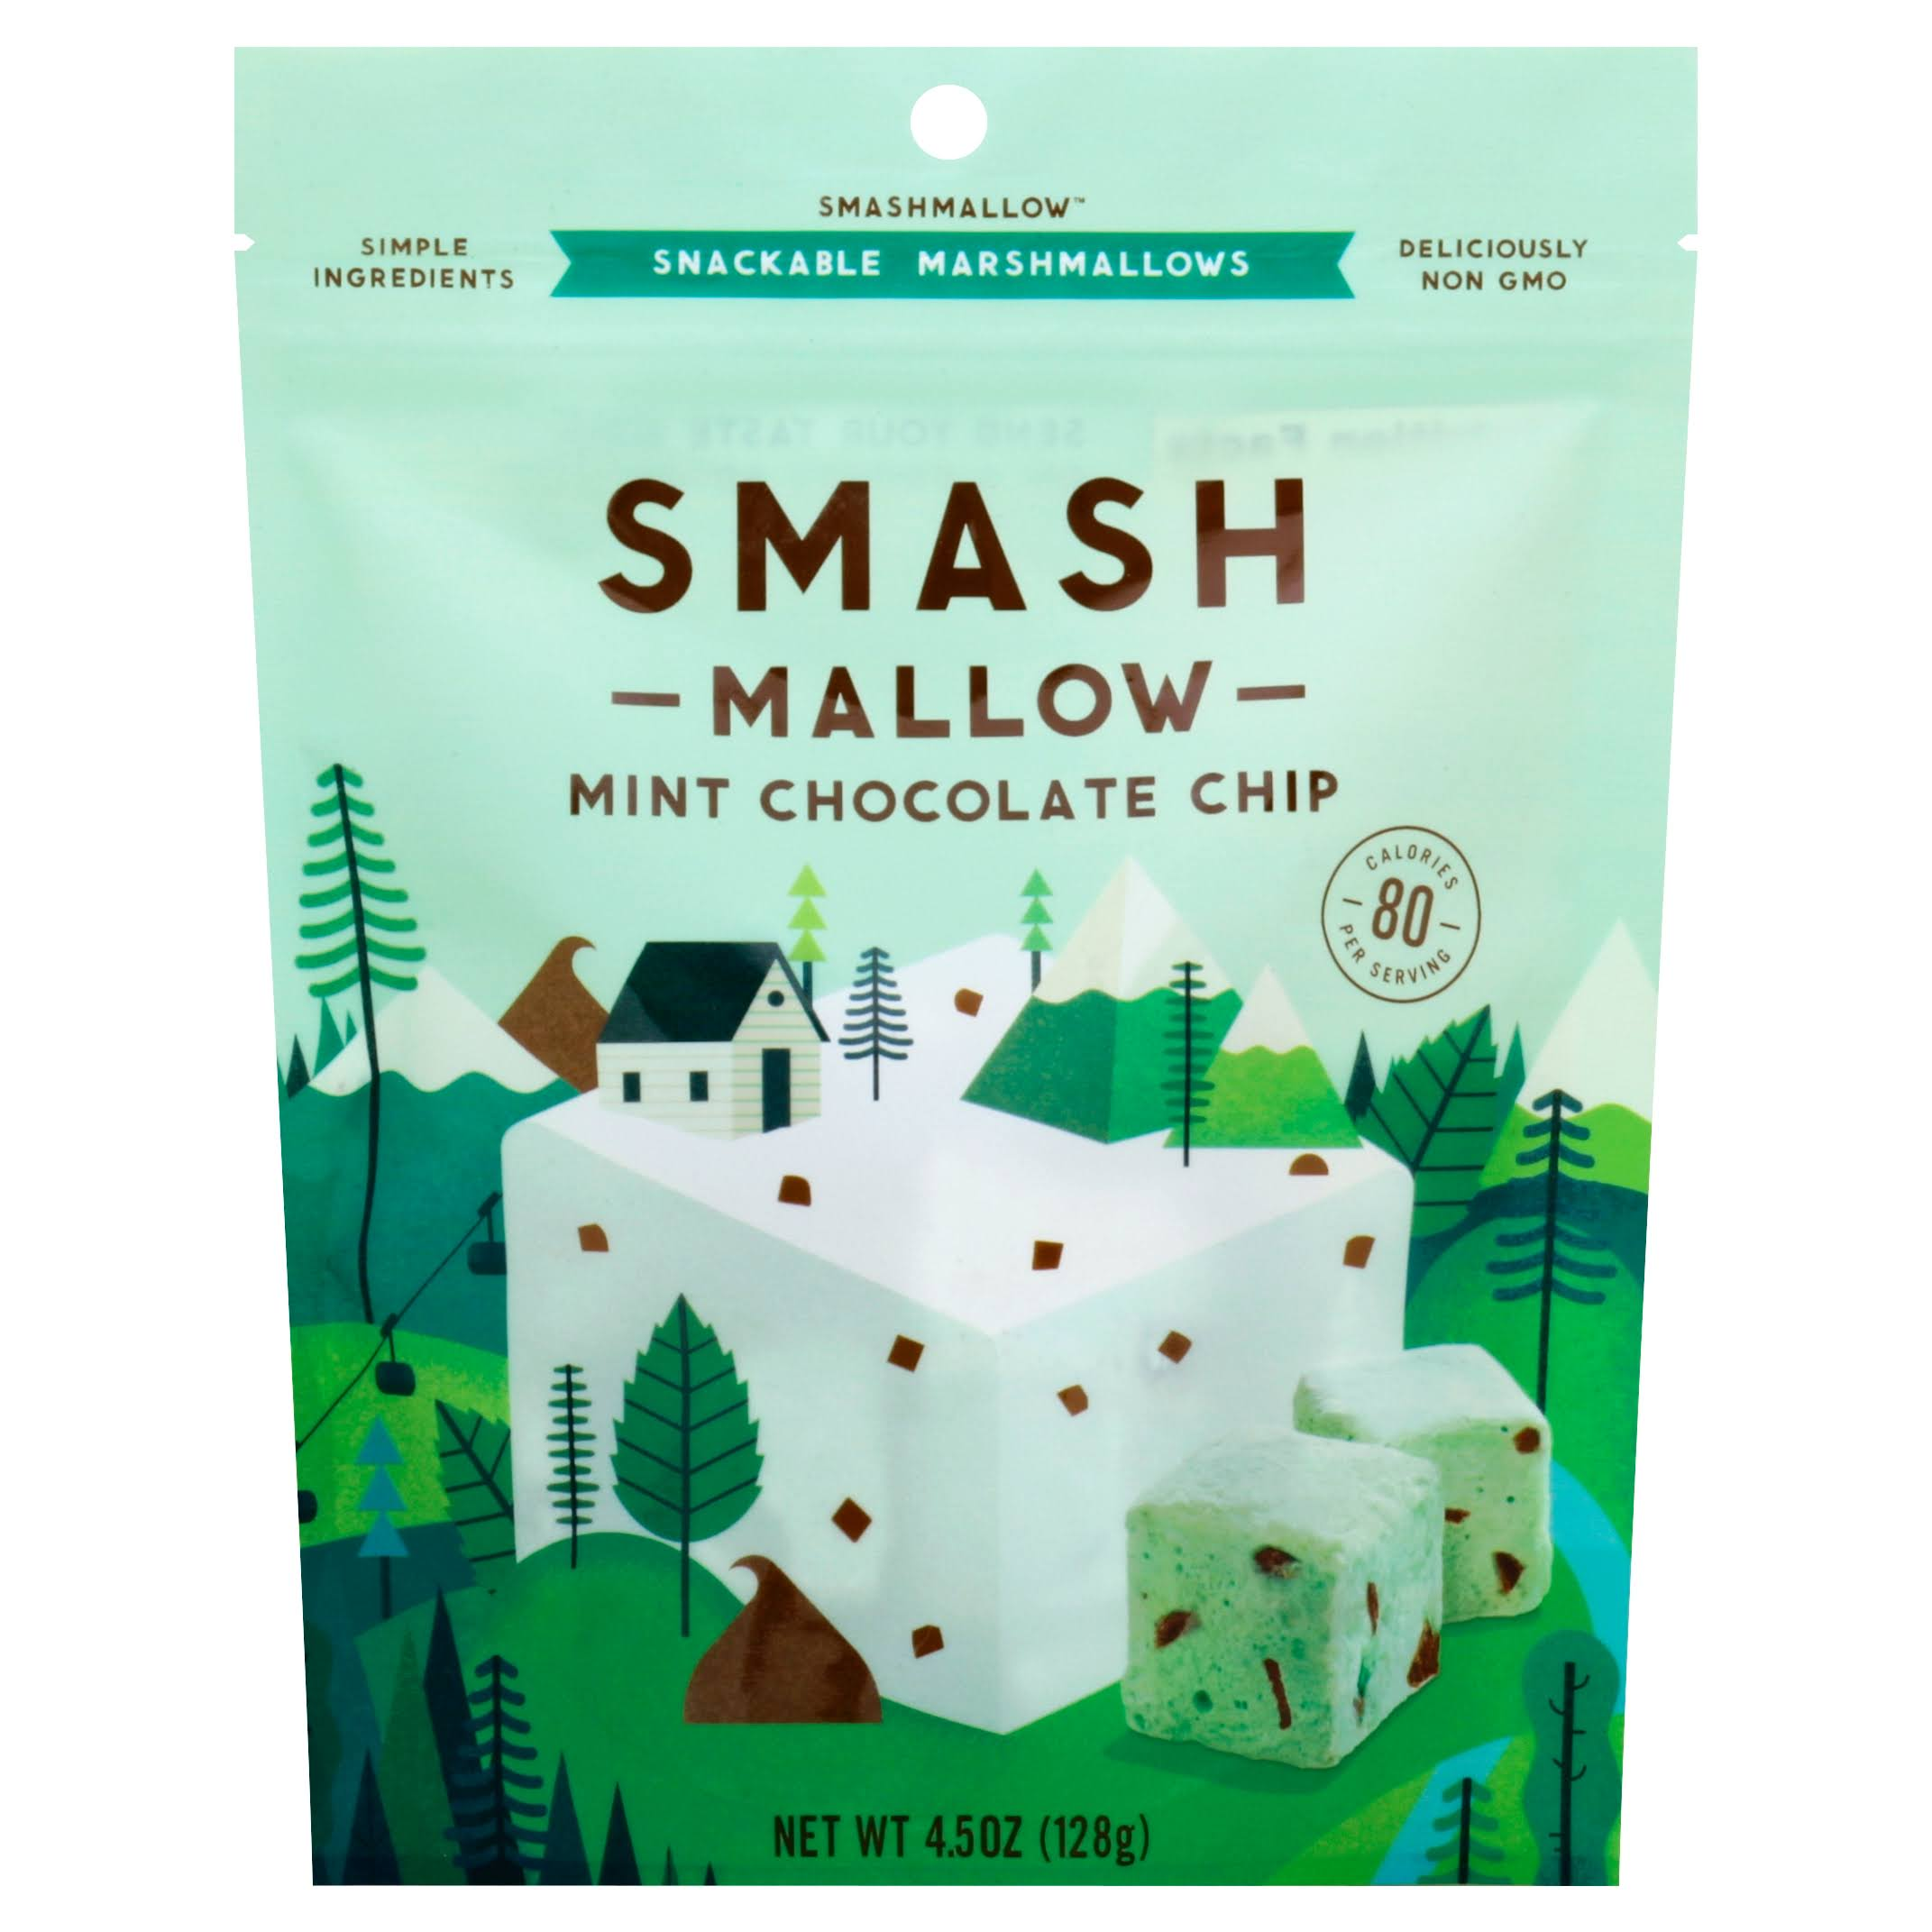 Smash Mallow Snackable Marshmallow - Mint Chocolate Chip, 128g